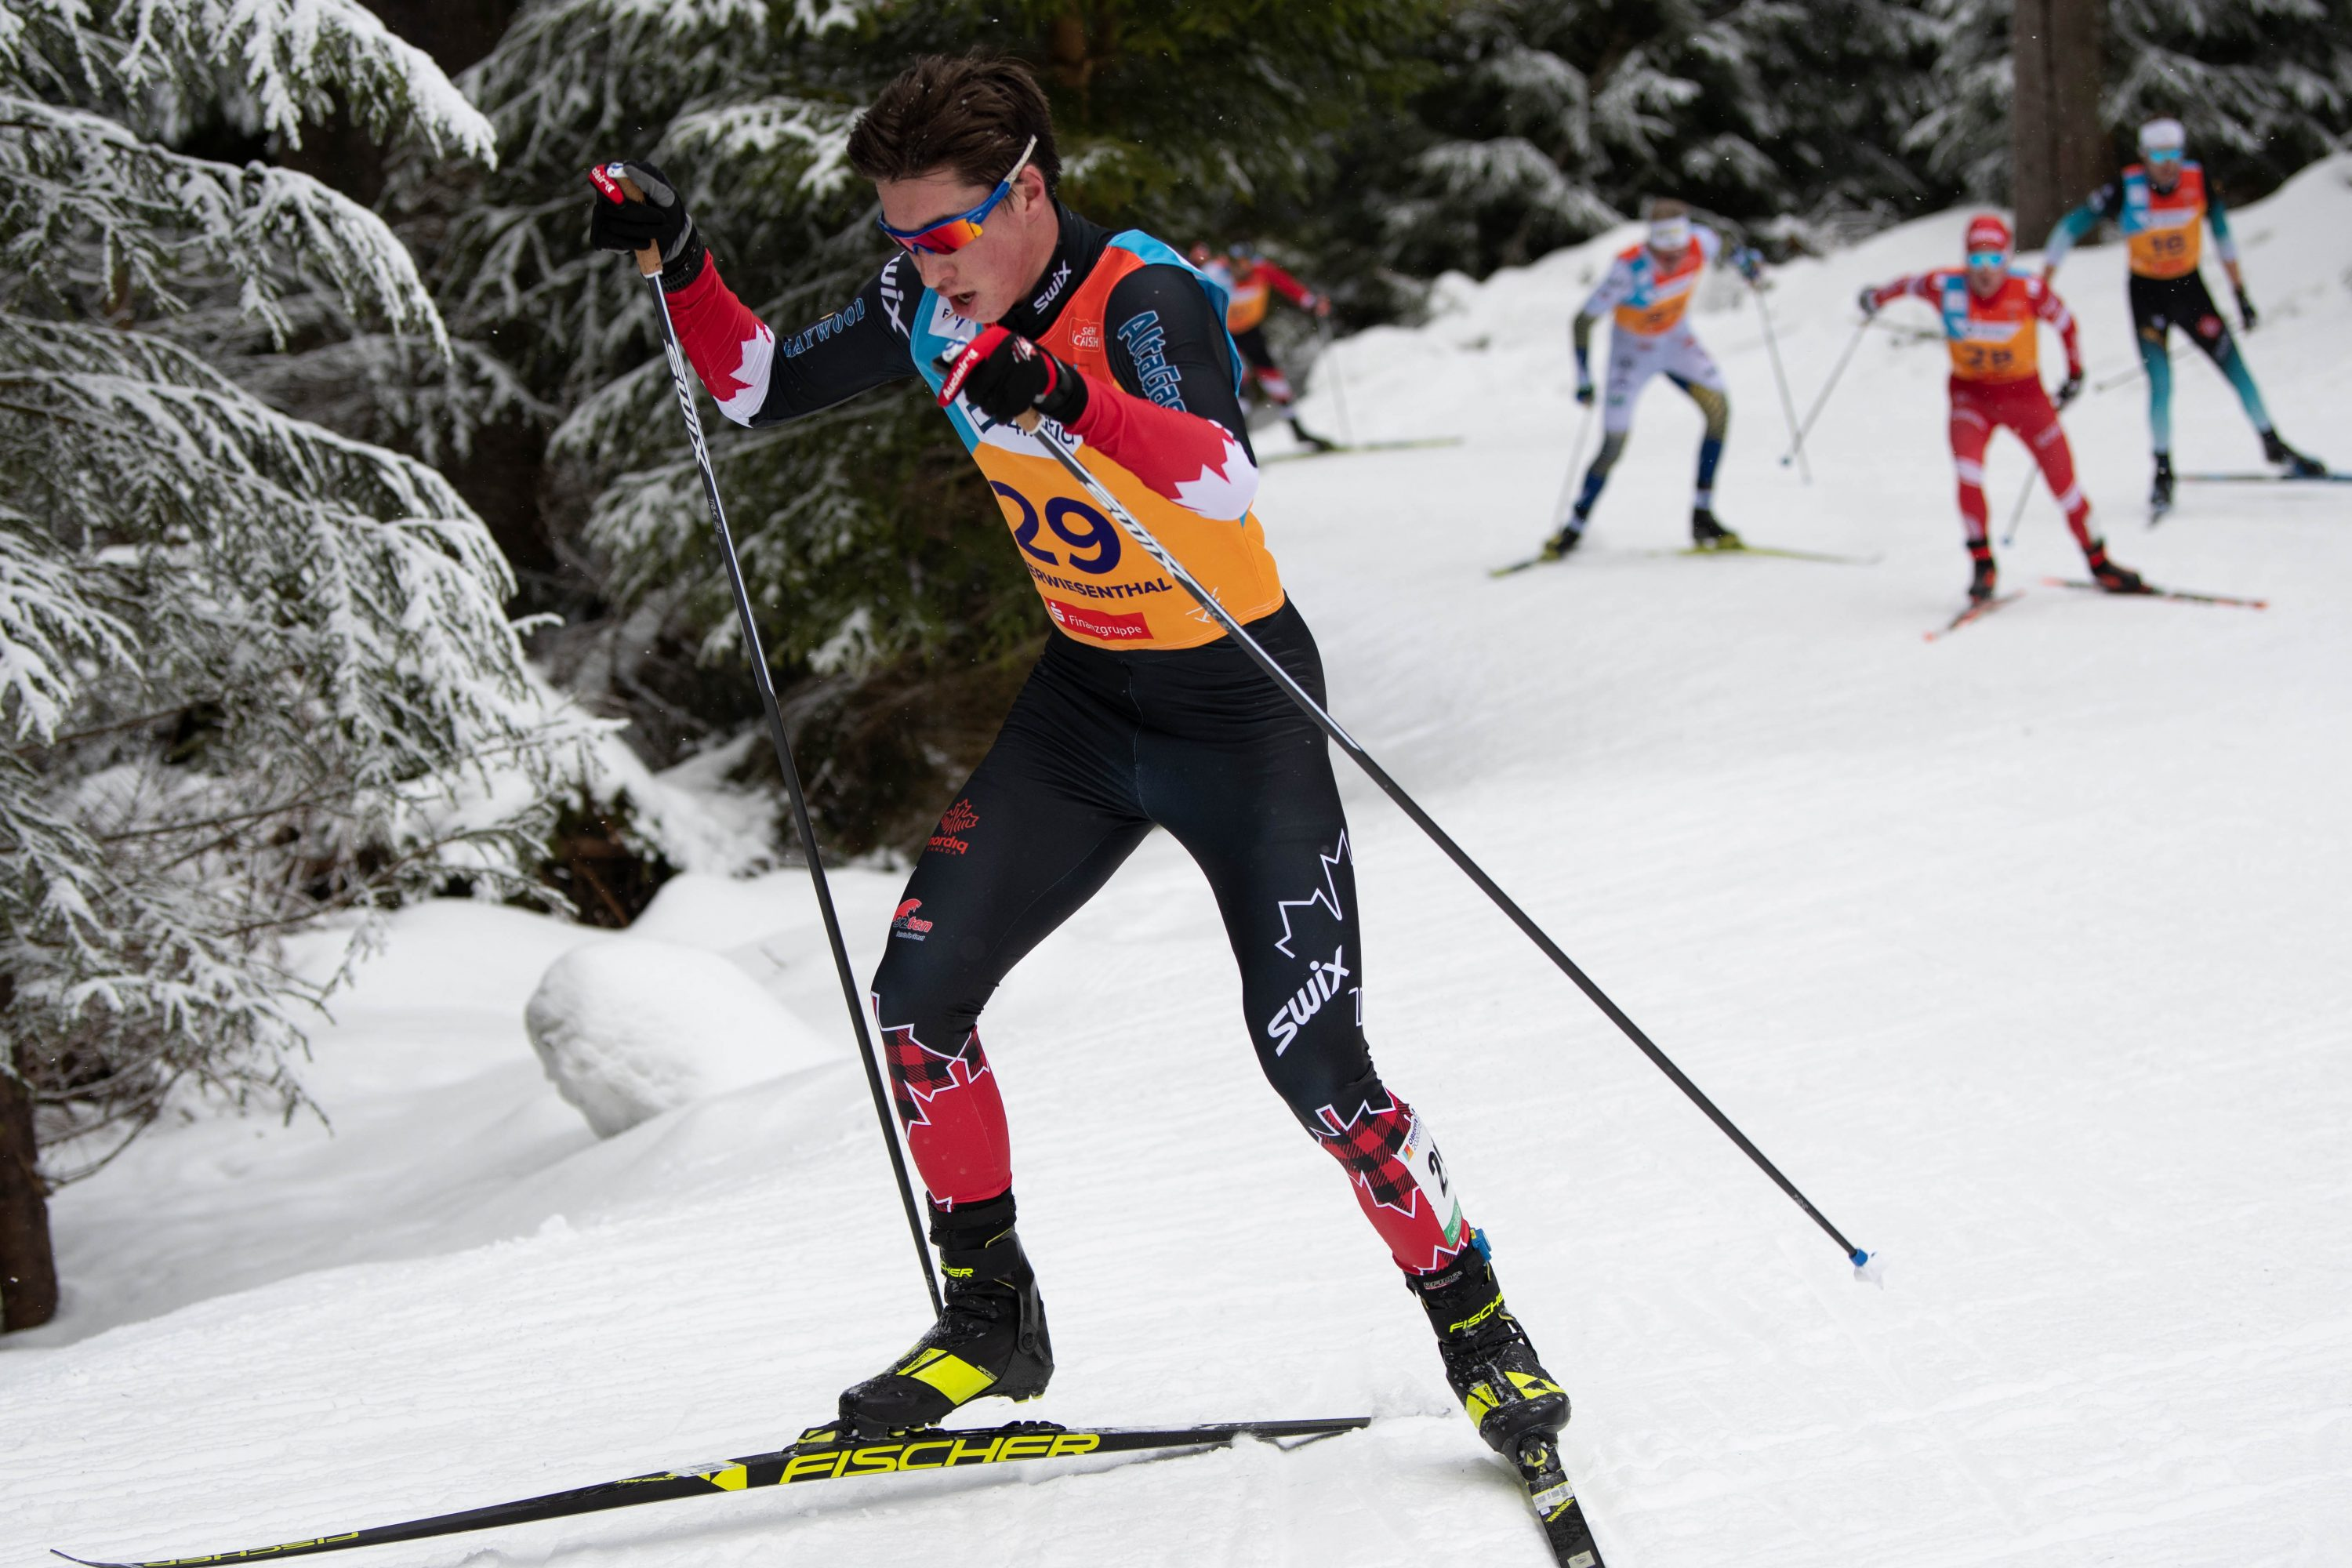 Xavier McKeever competes in cross-country skiing